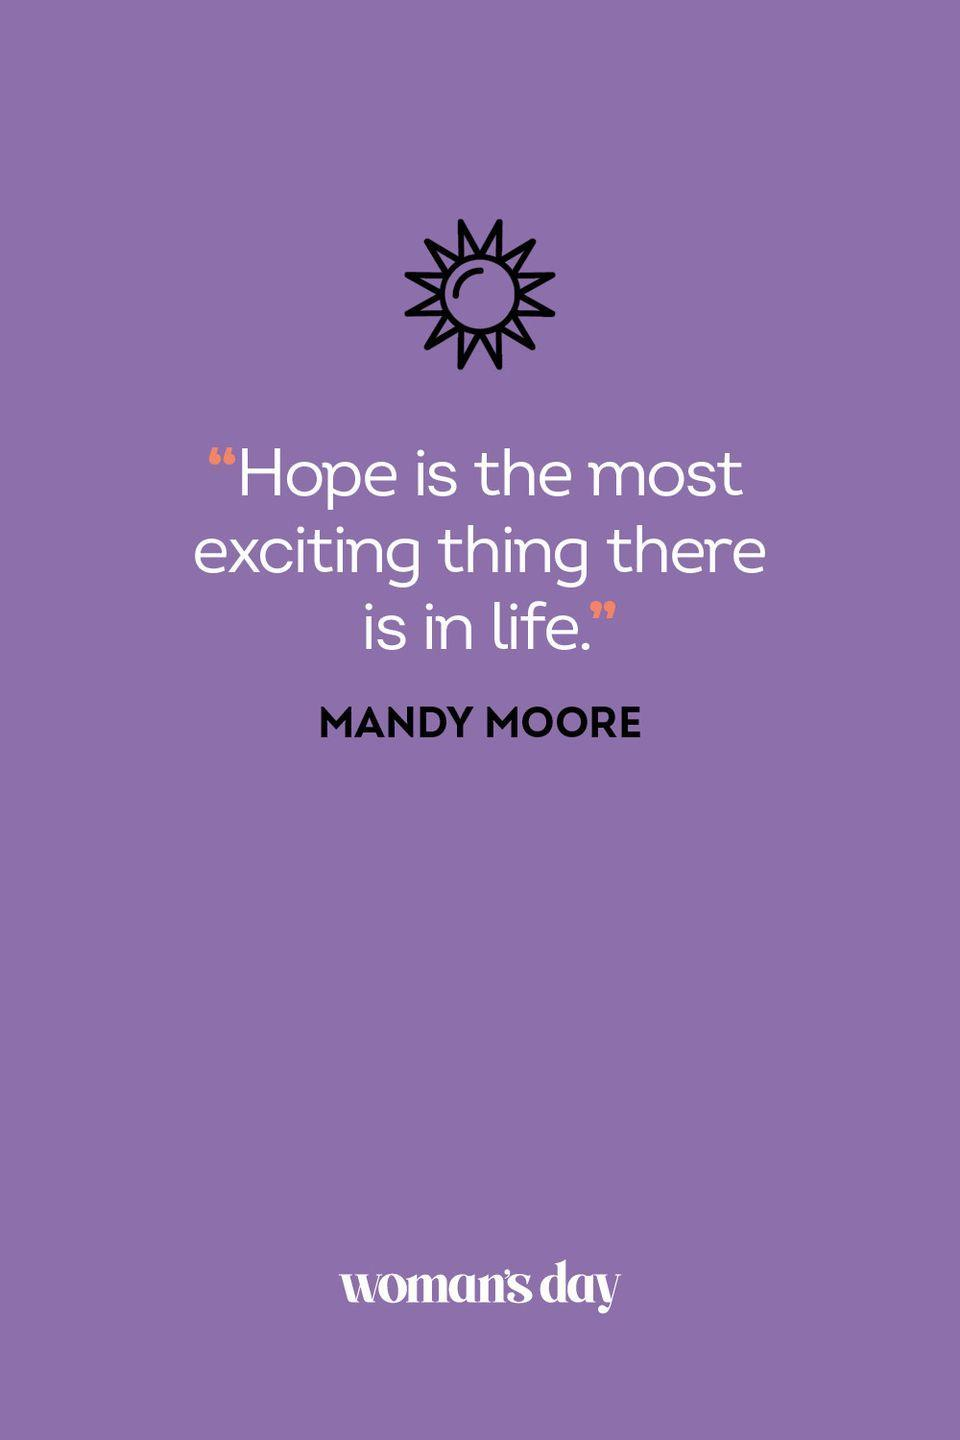 <p>Hope is the most exciting thing there is in life.</p>